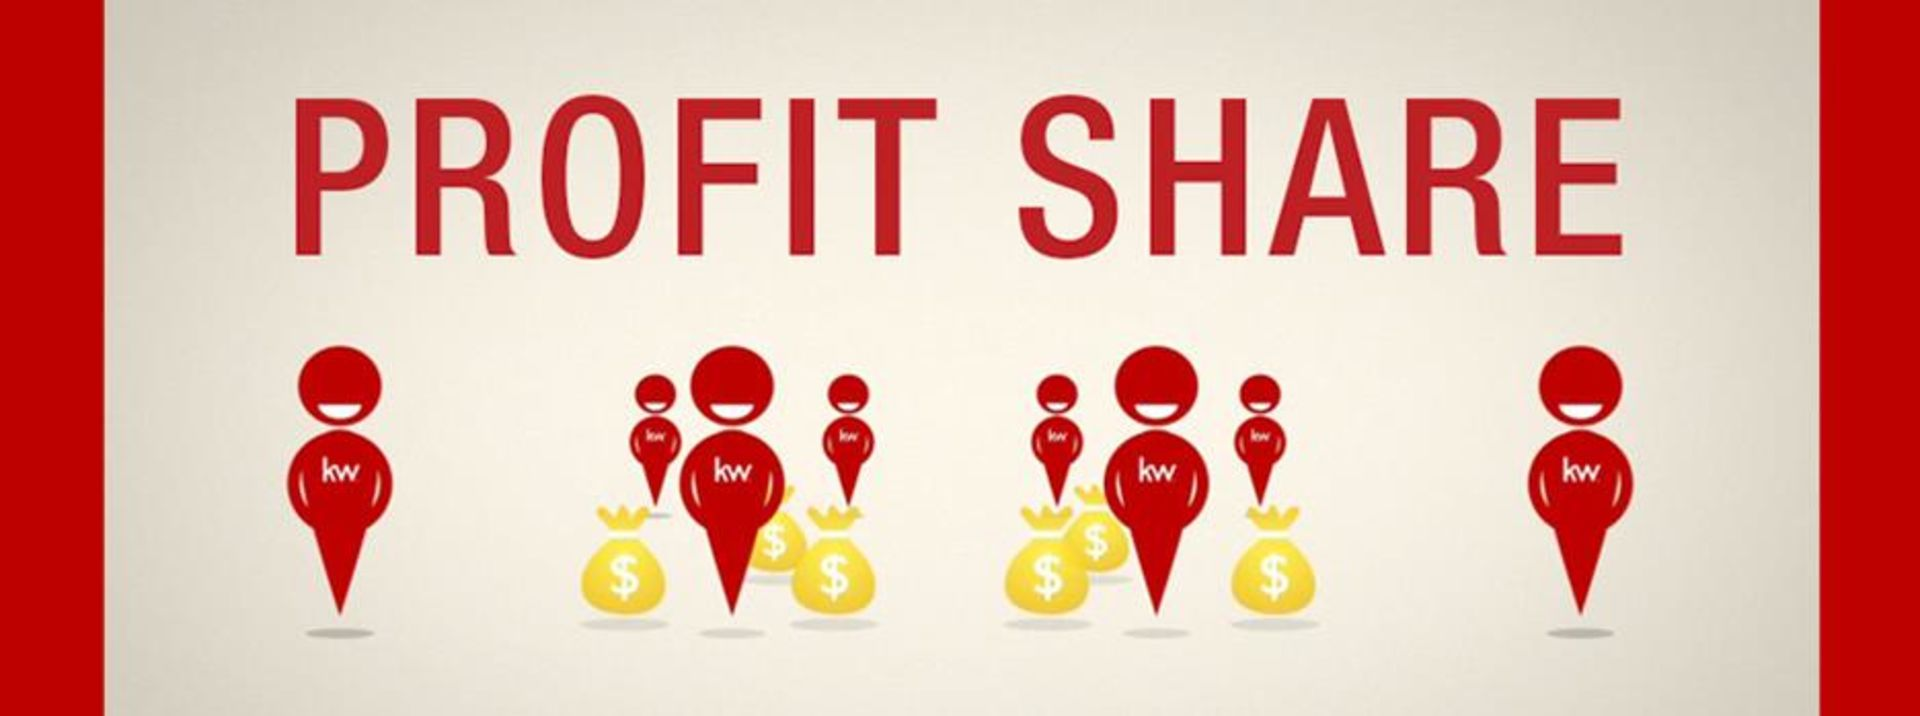 Wealth Building with Profit Share